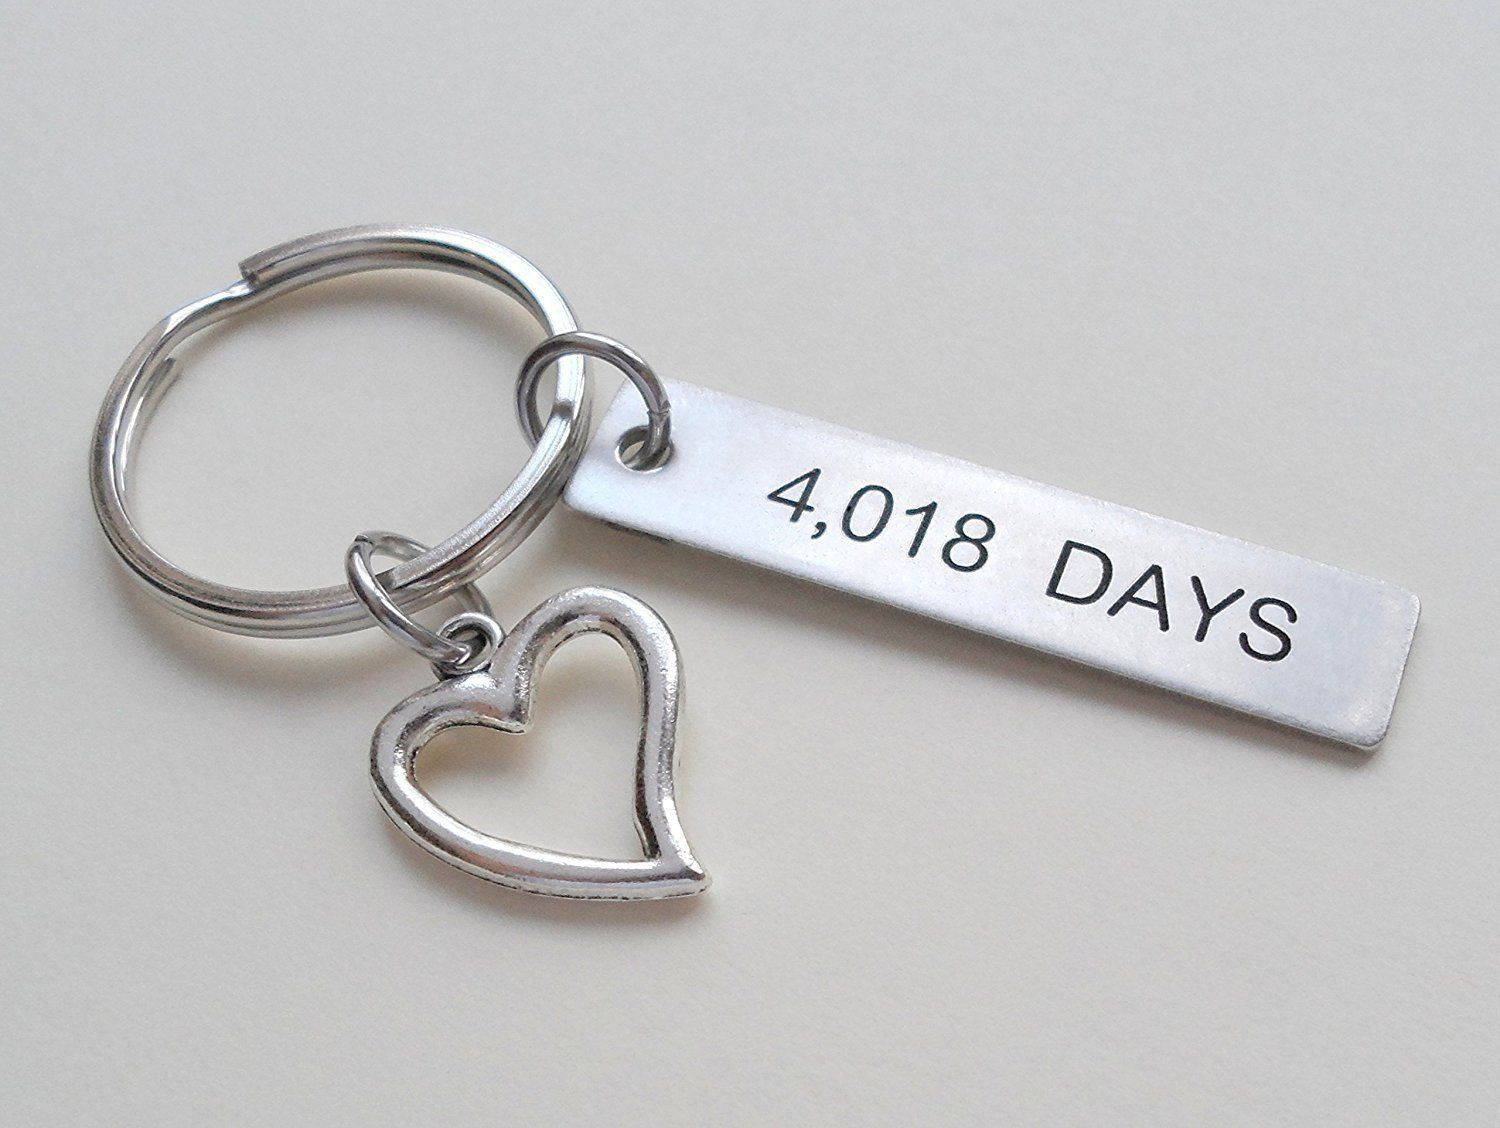 11 Year Anniversary Gift Stainless Steel Engraved W 4 018 Days Heart Charm Jewelryeveryday